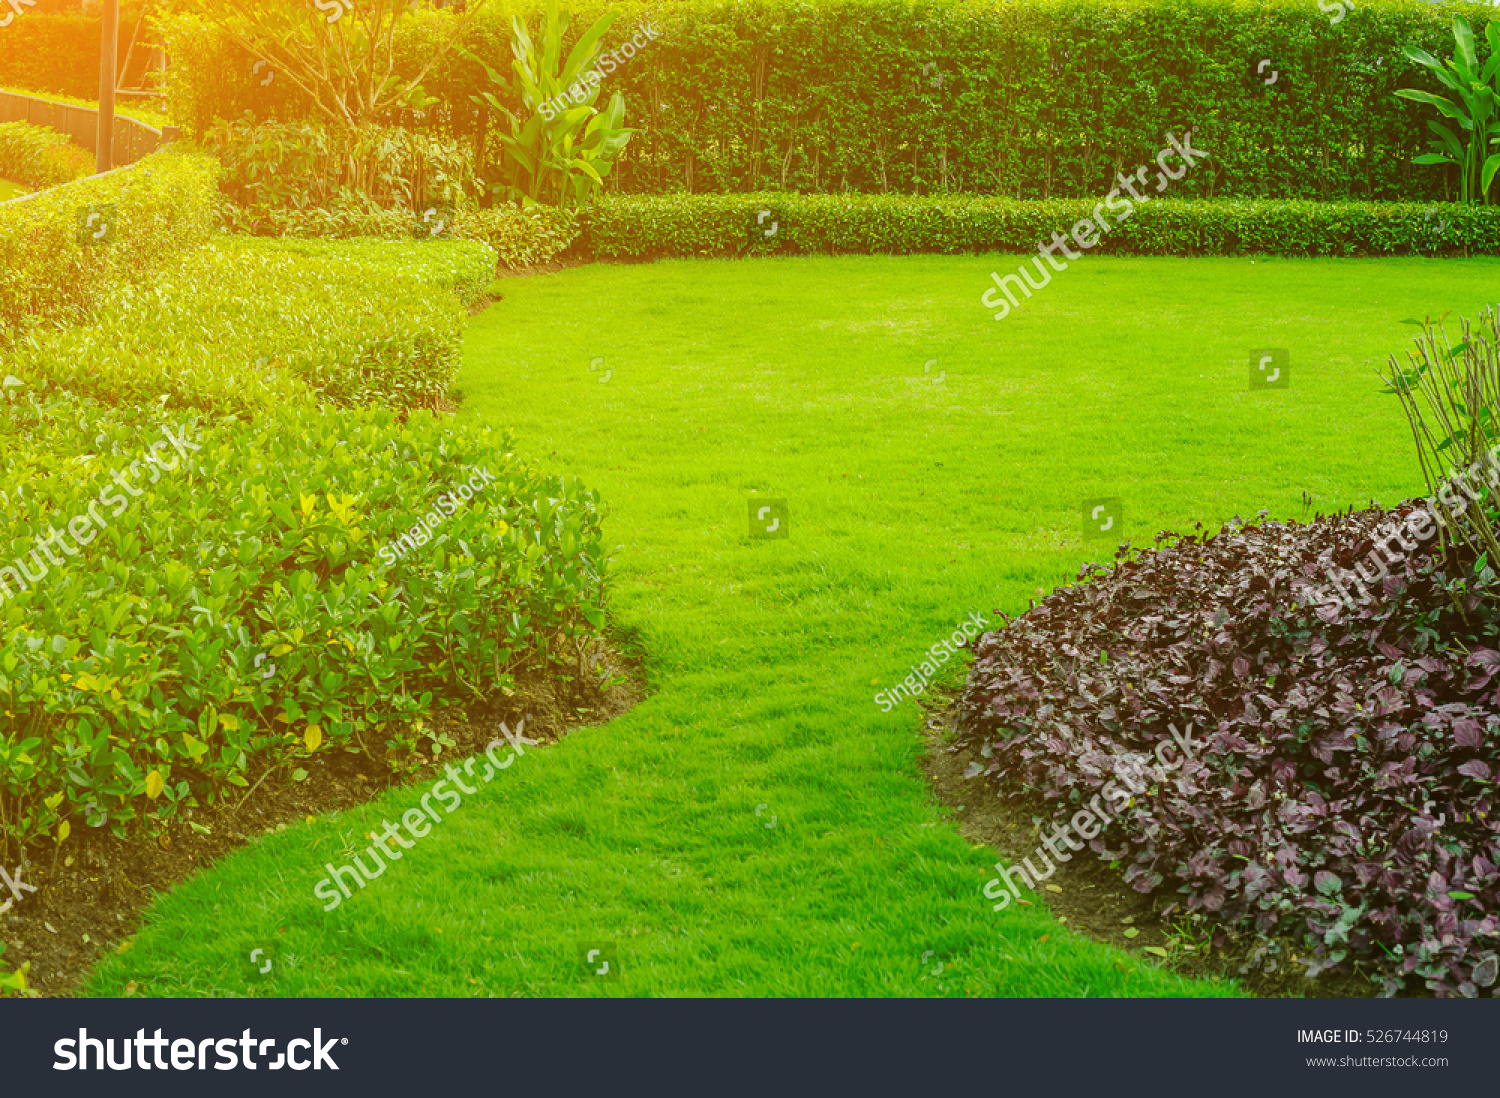 Green lawngarden landscape design stock photo 526744819 for Green landscape design